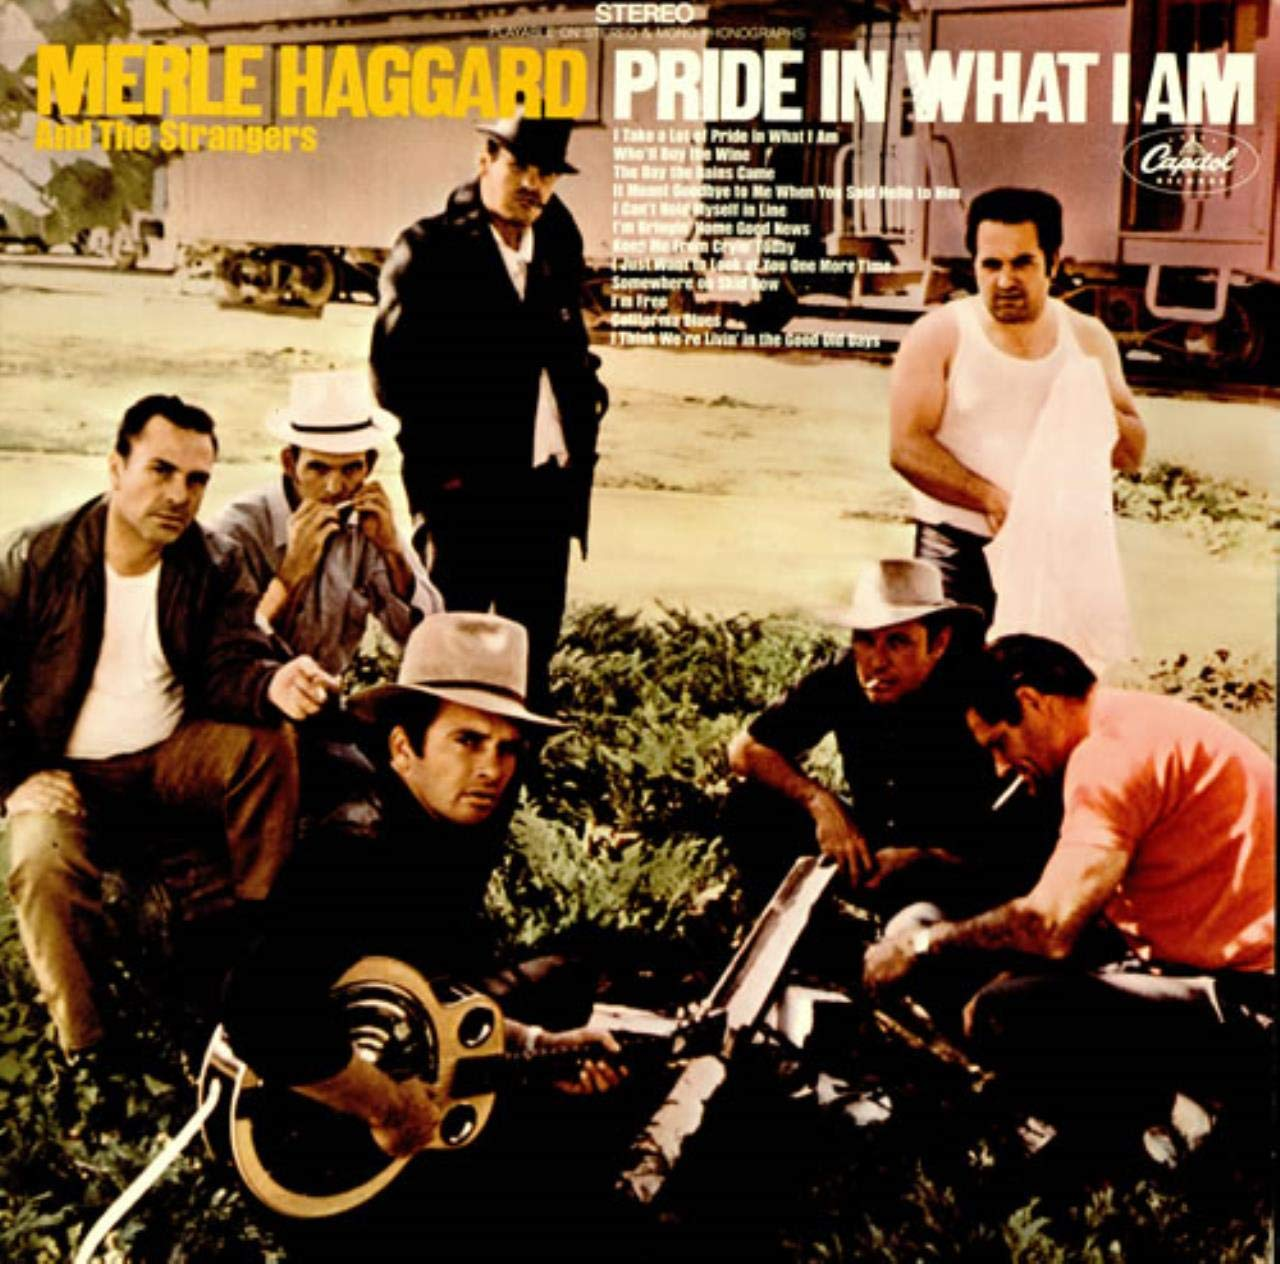 The album, Pride In What I Am, released February 10, 1969, finishing at #11.